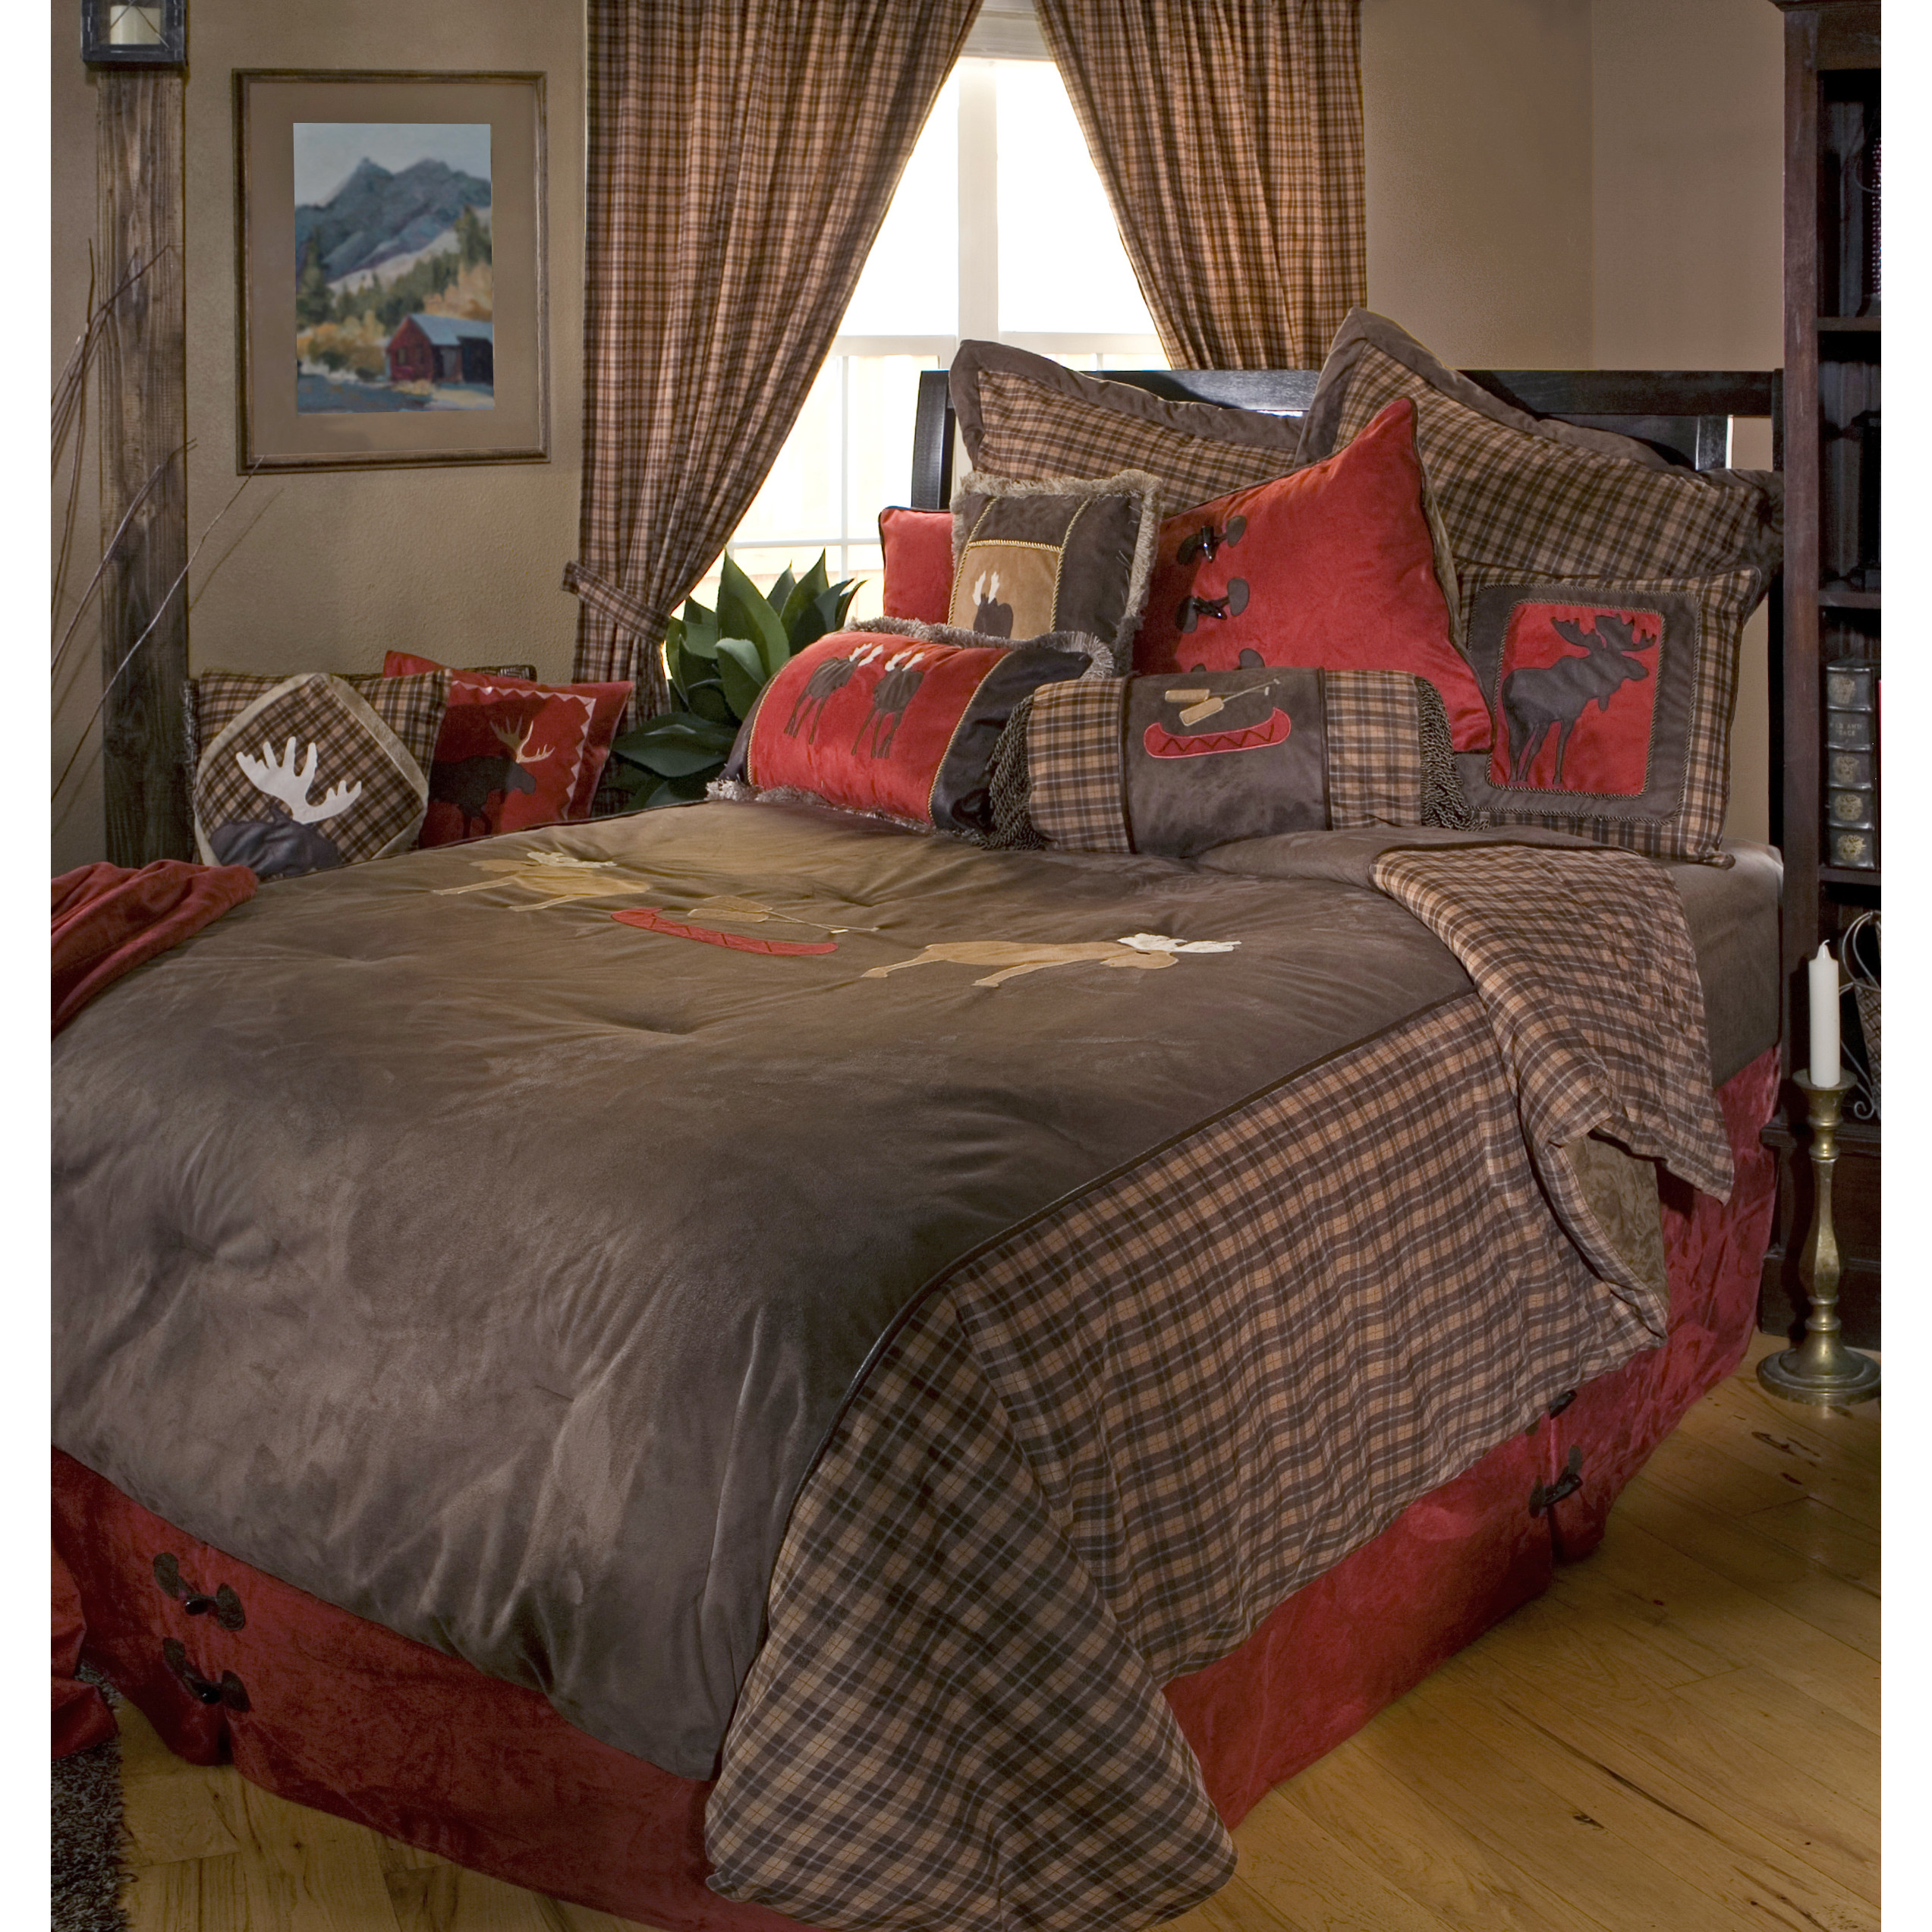 Exquisitie plaid comforter with rugs and wooden floor plus headboard and sidetable also pillows